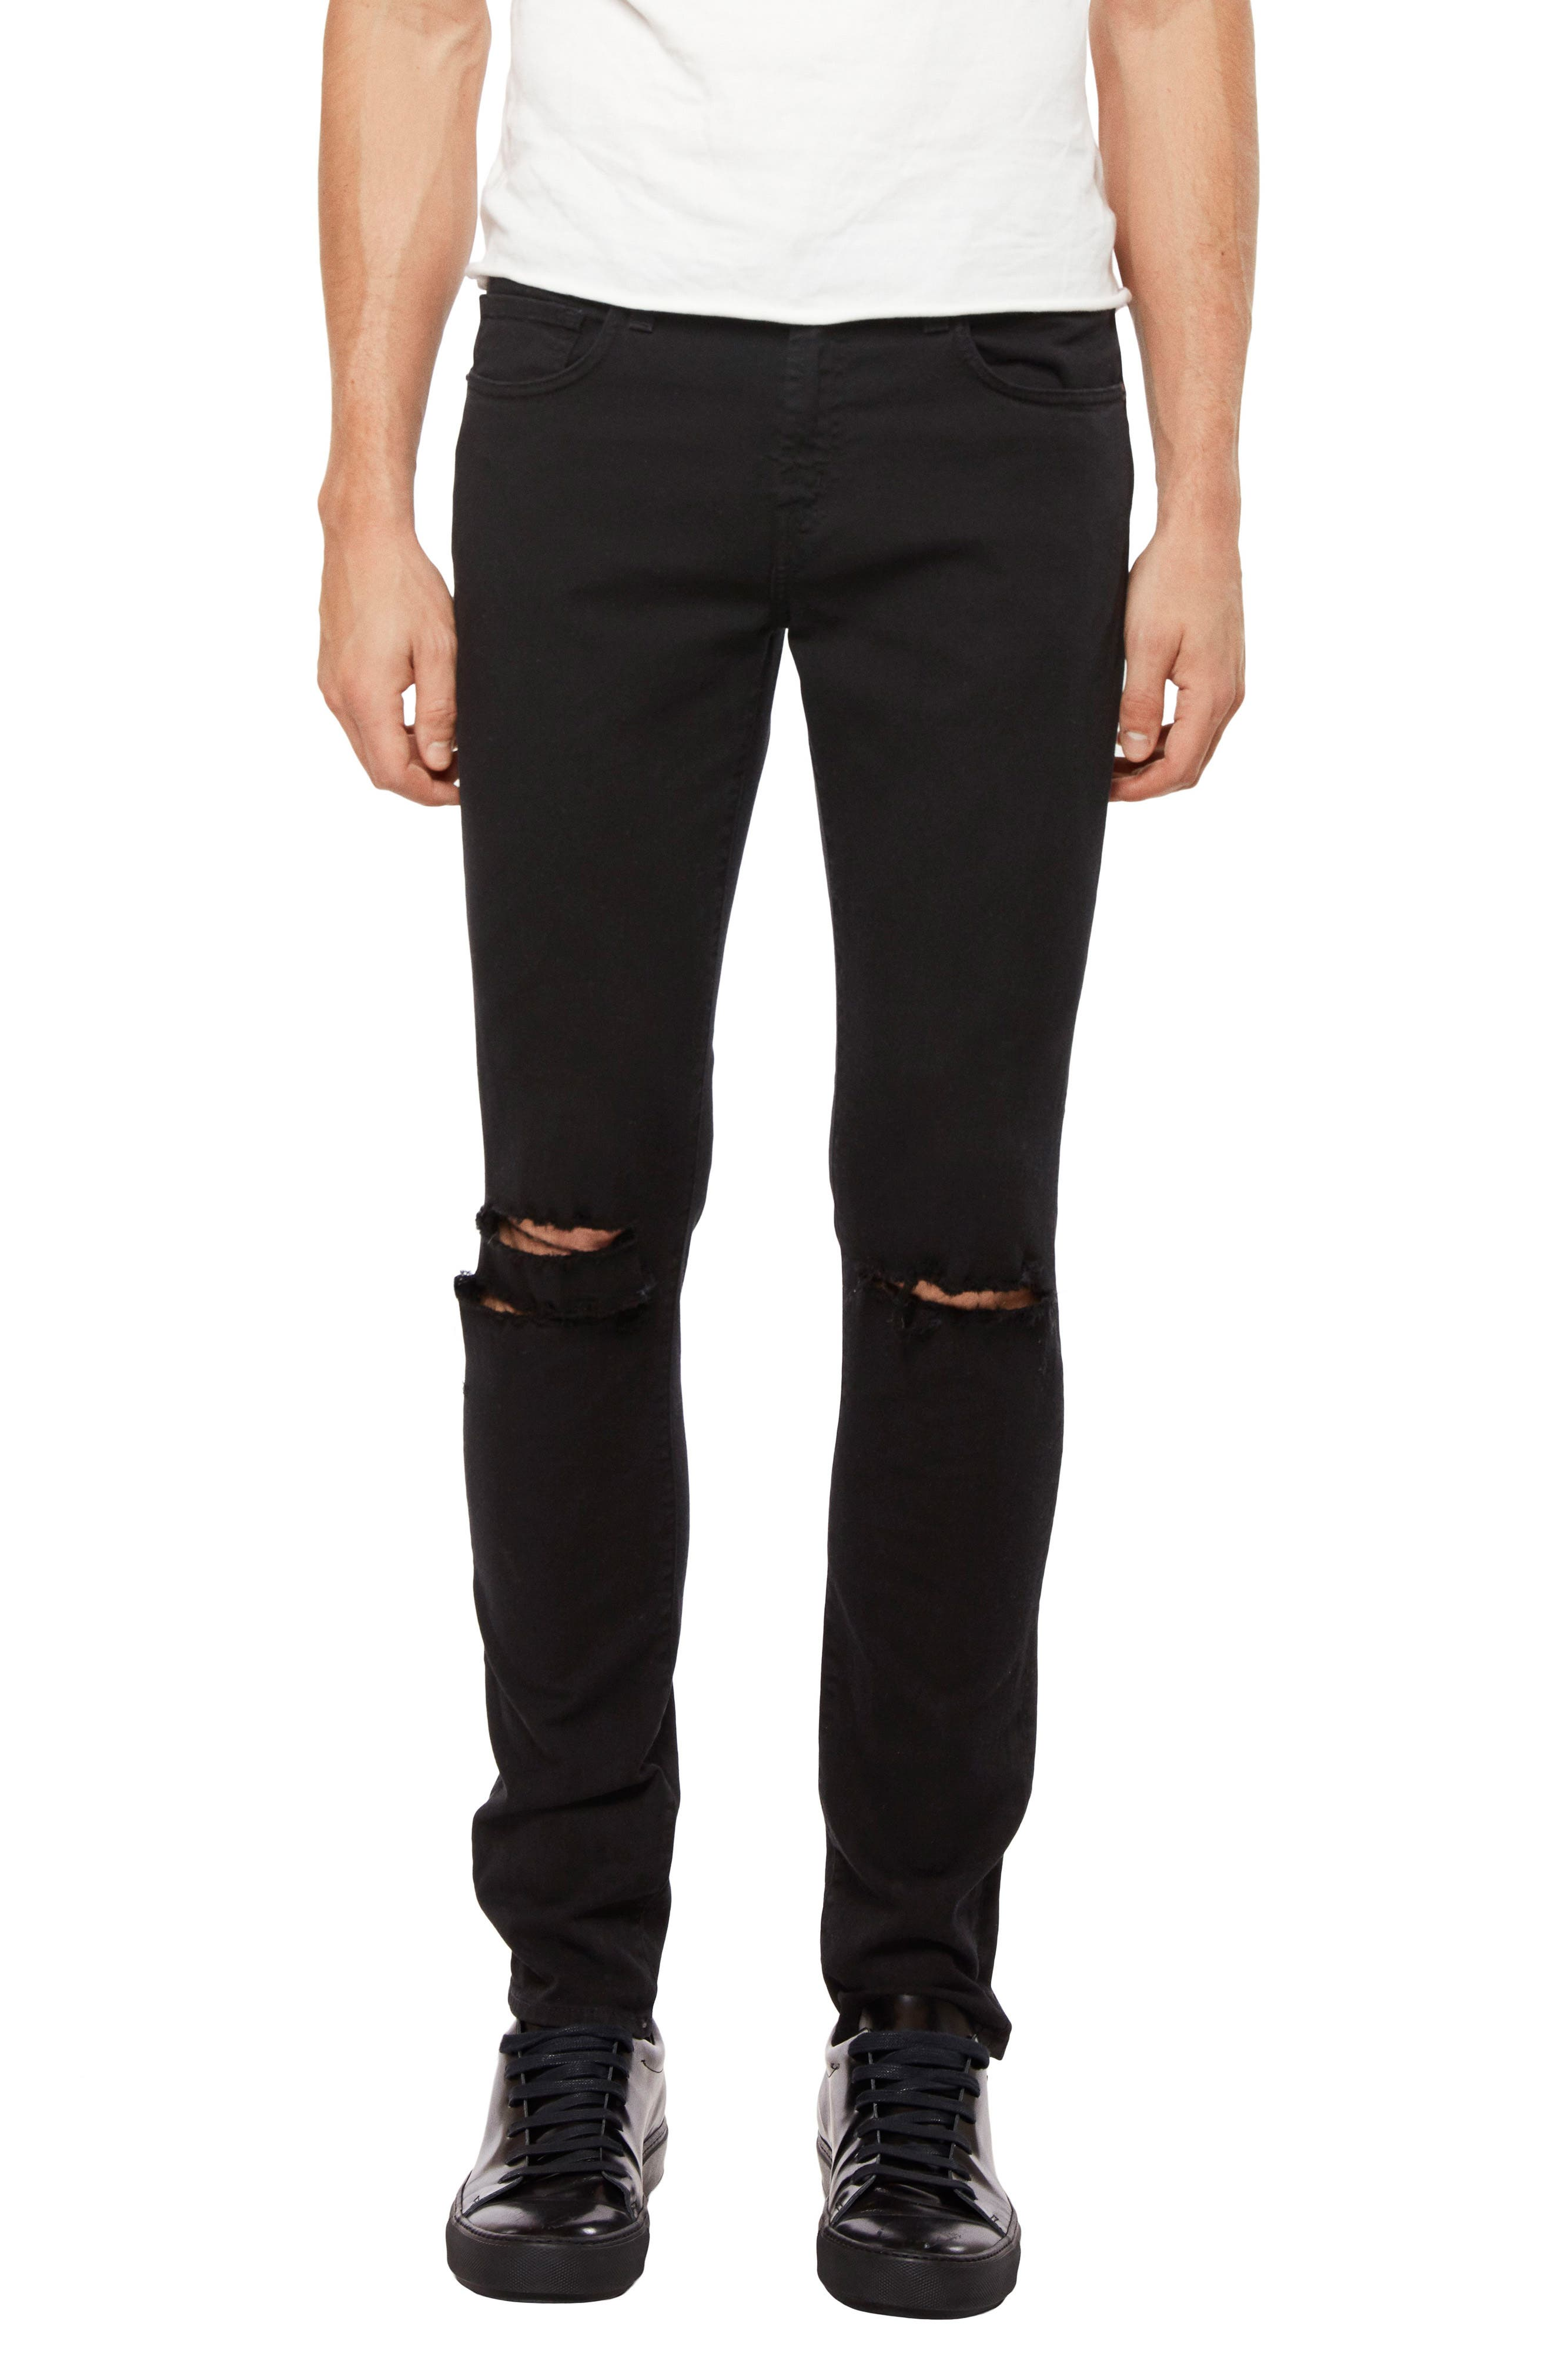 Mick Skinny Fit Jeans,                         Main,                         color, 001